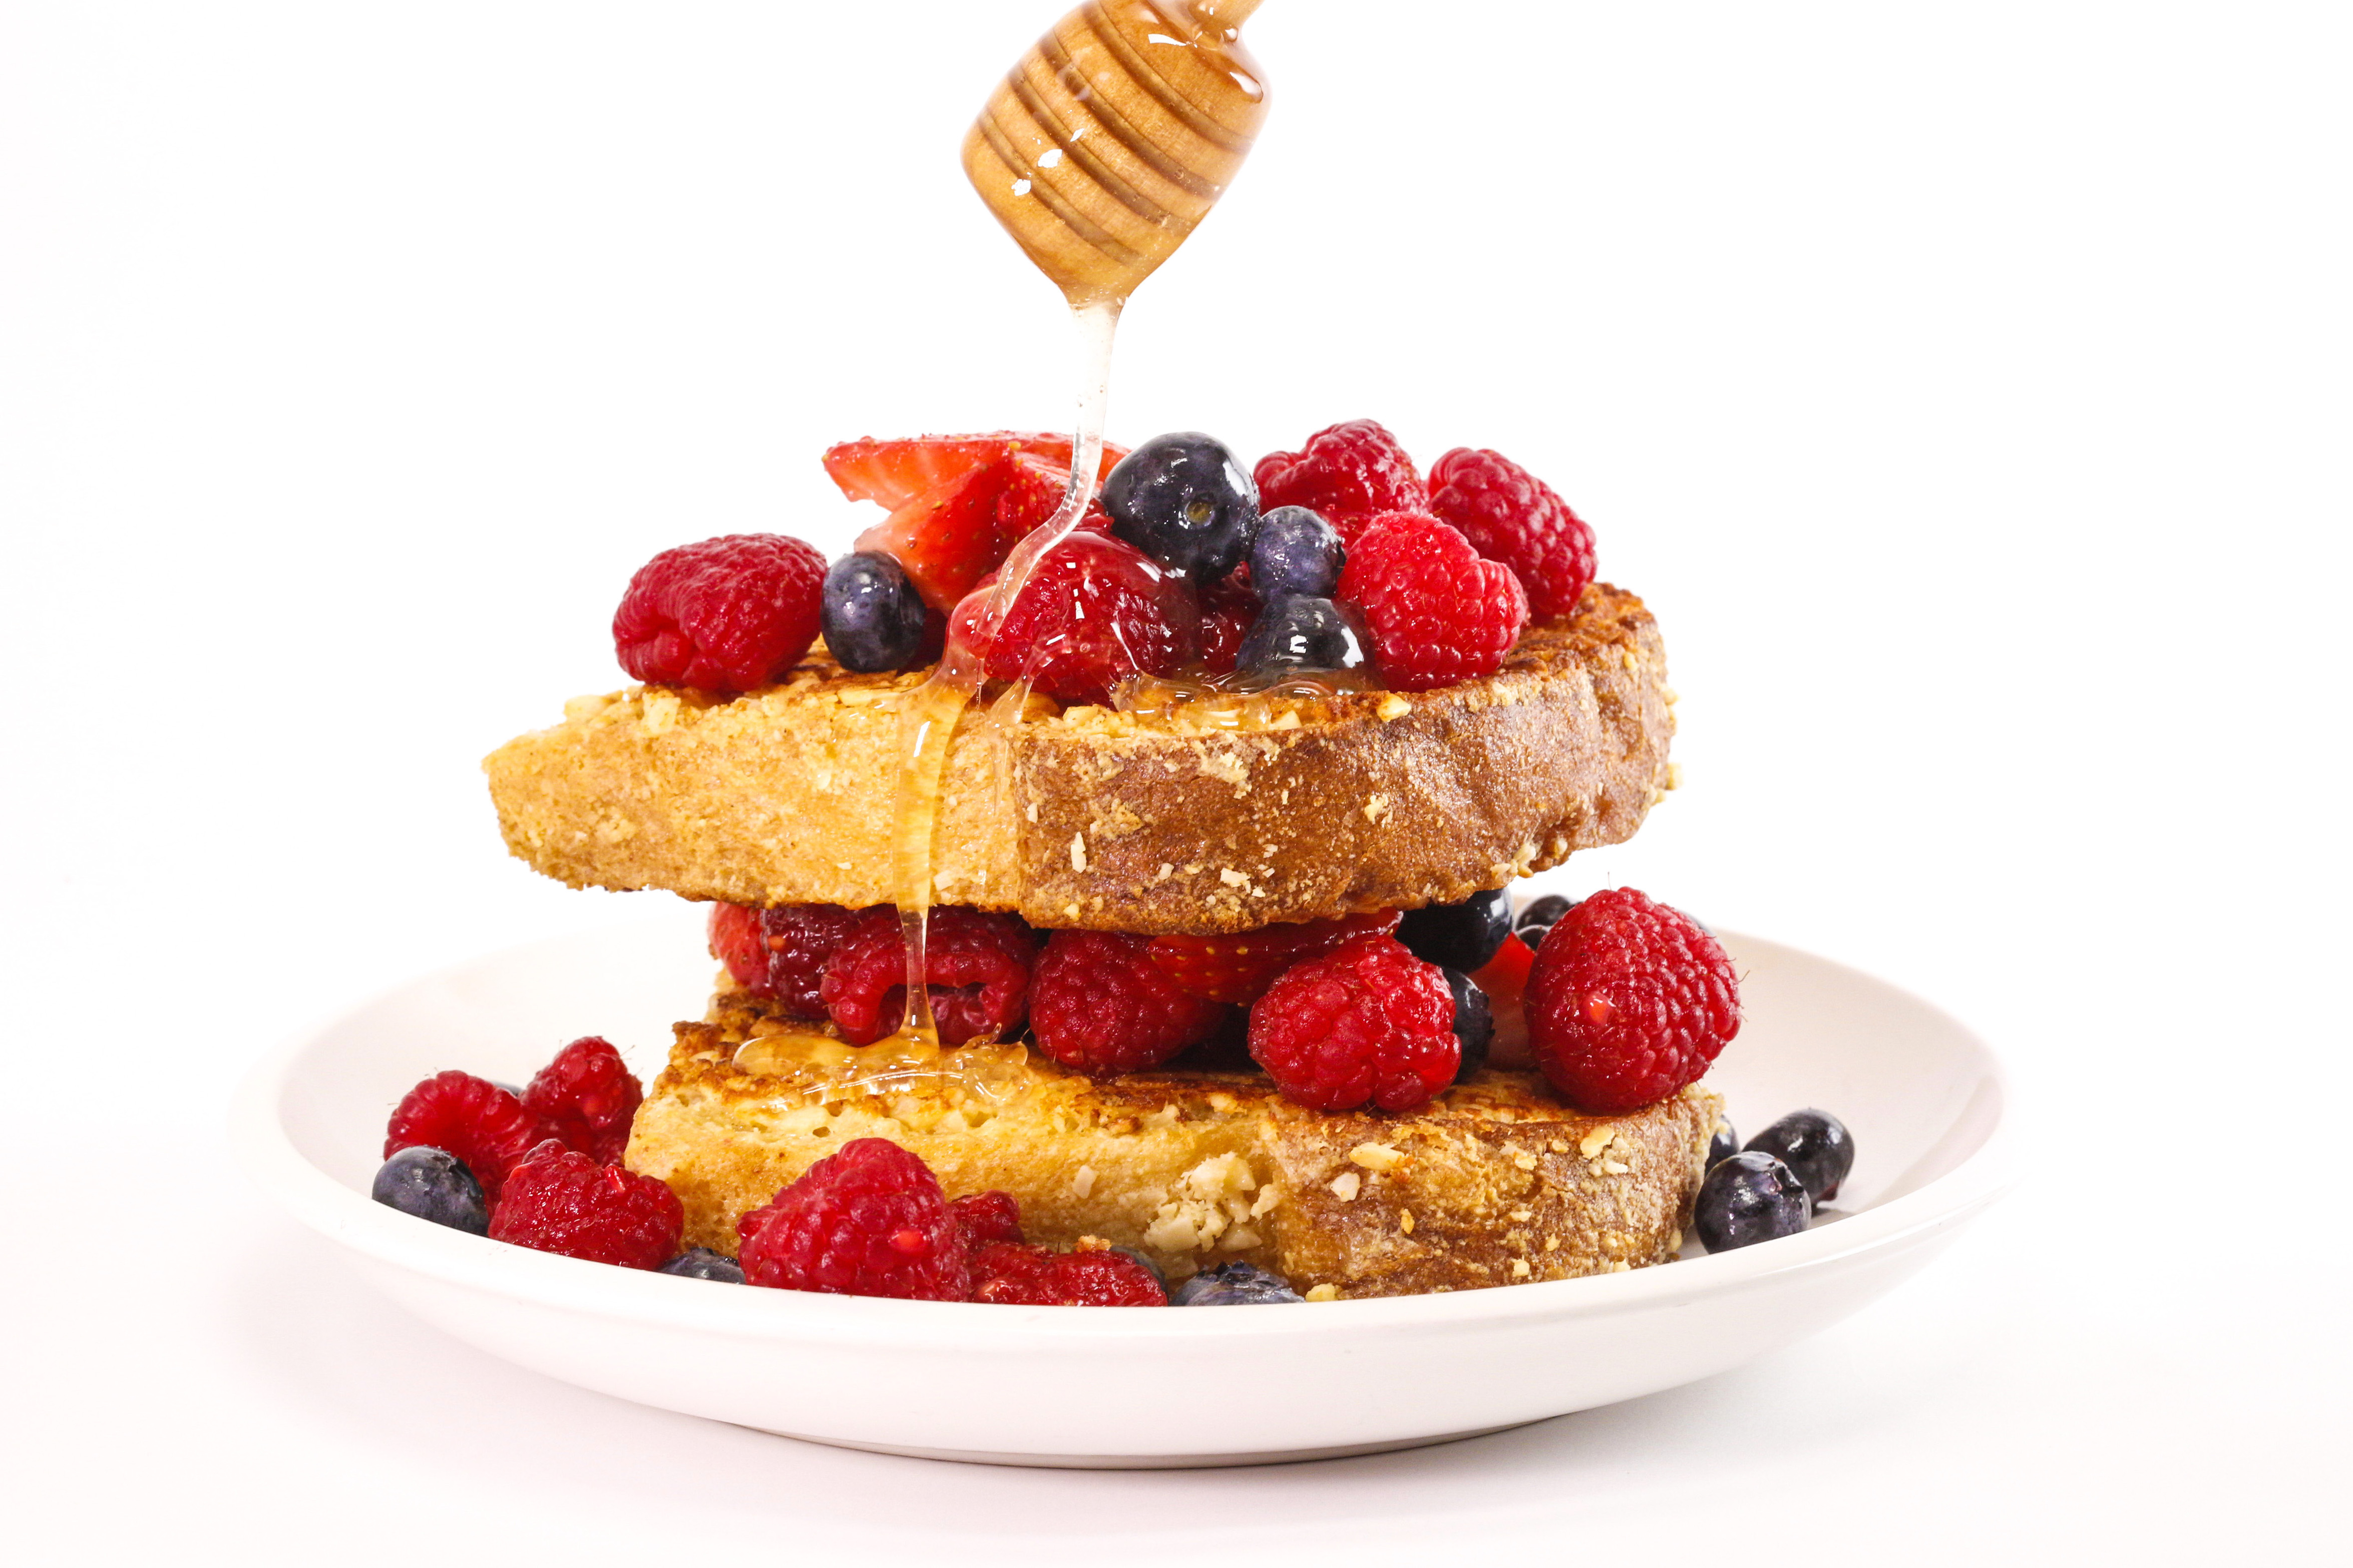 Rachael's Parmigiano-Reggiano French Toast with Sausage Patties and Warm Honey